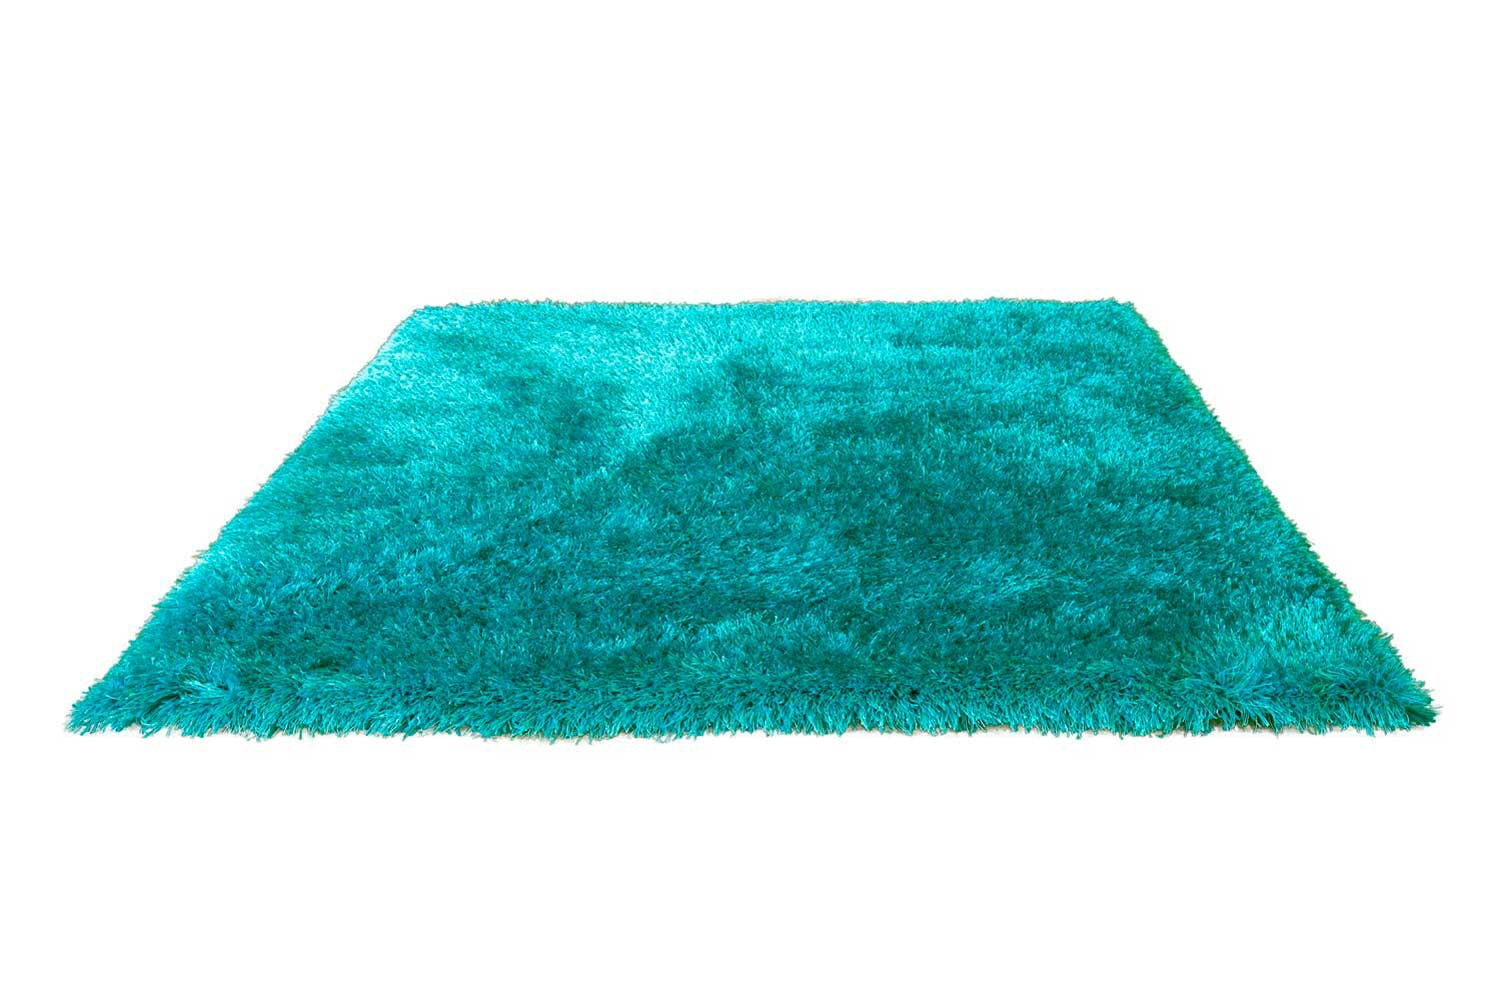 Tiffany Rug - Teal